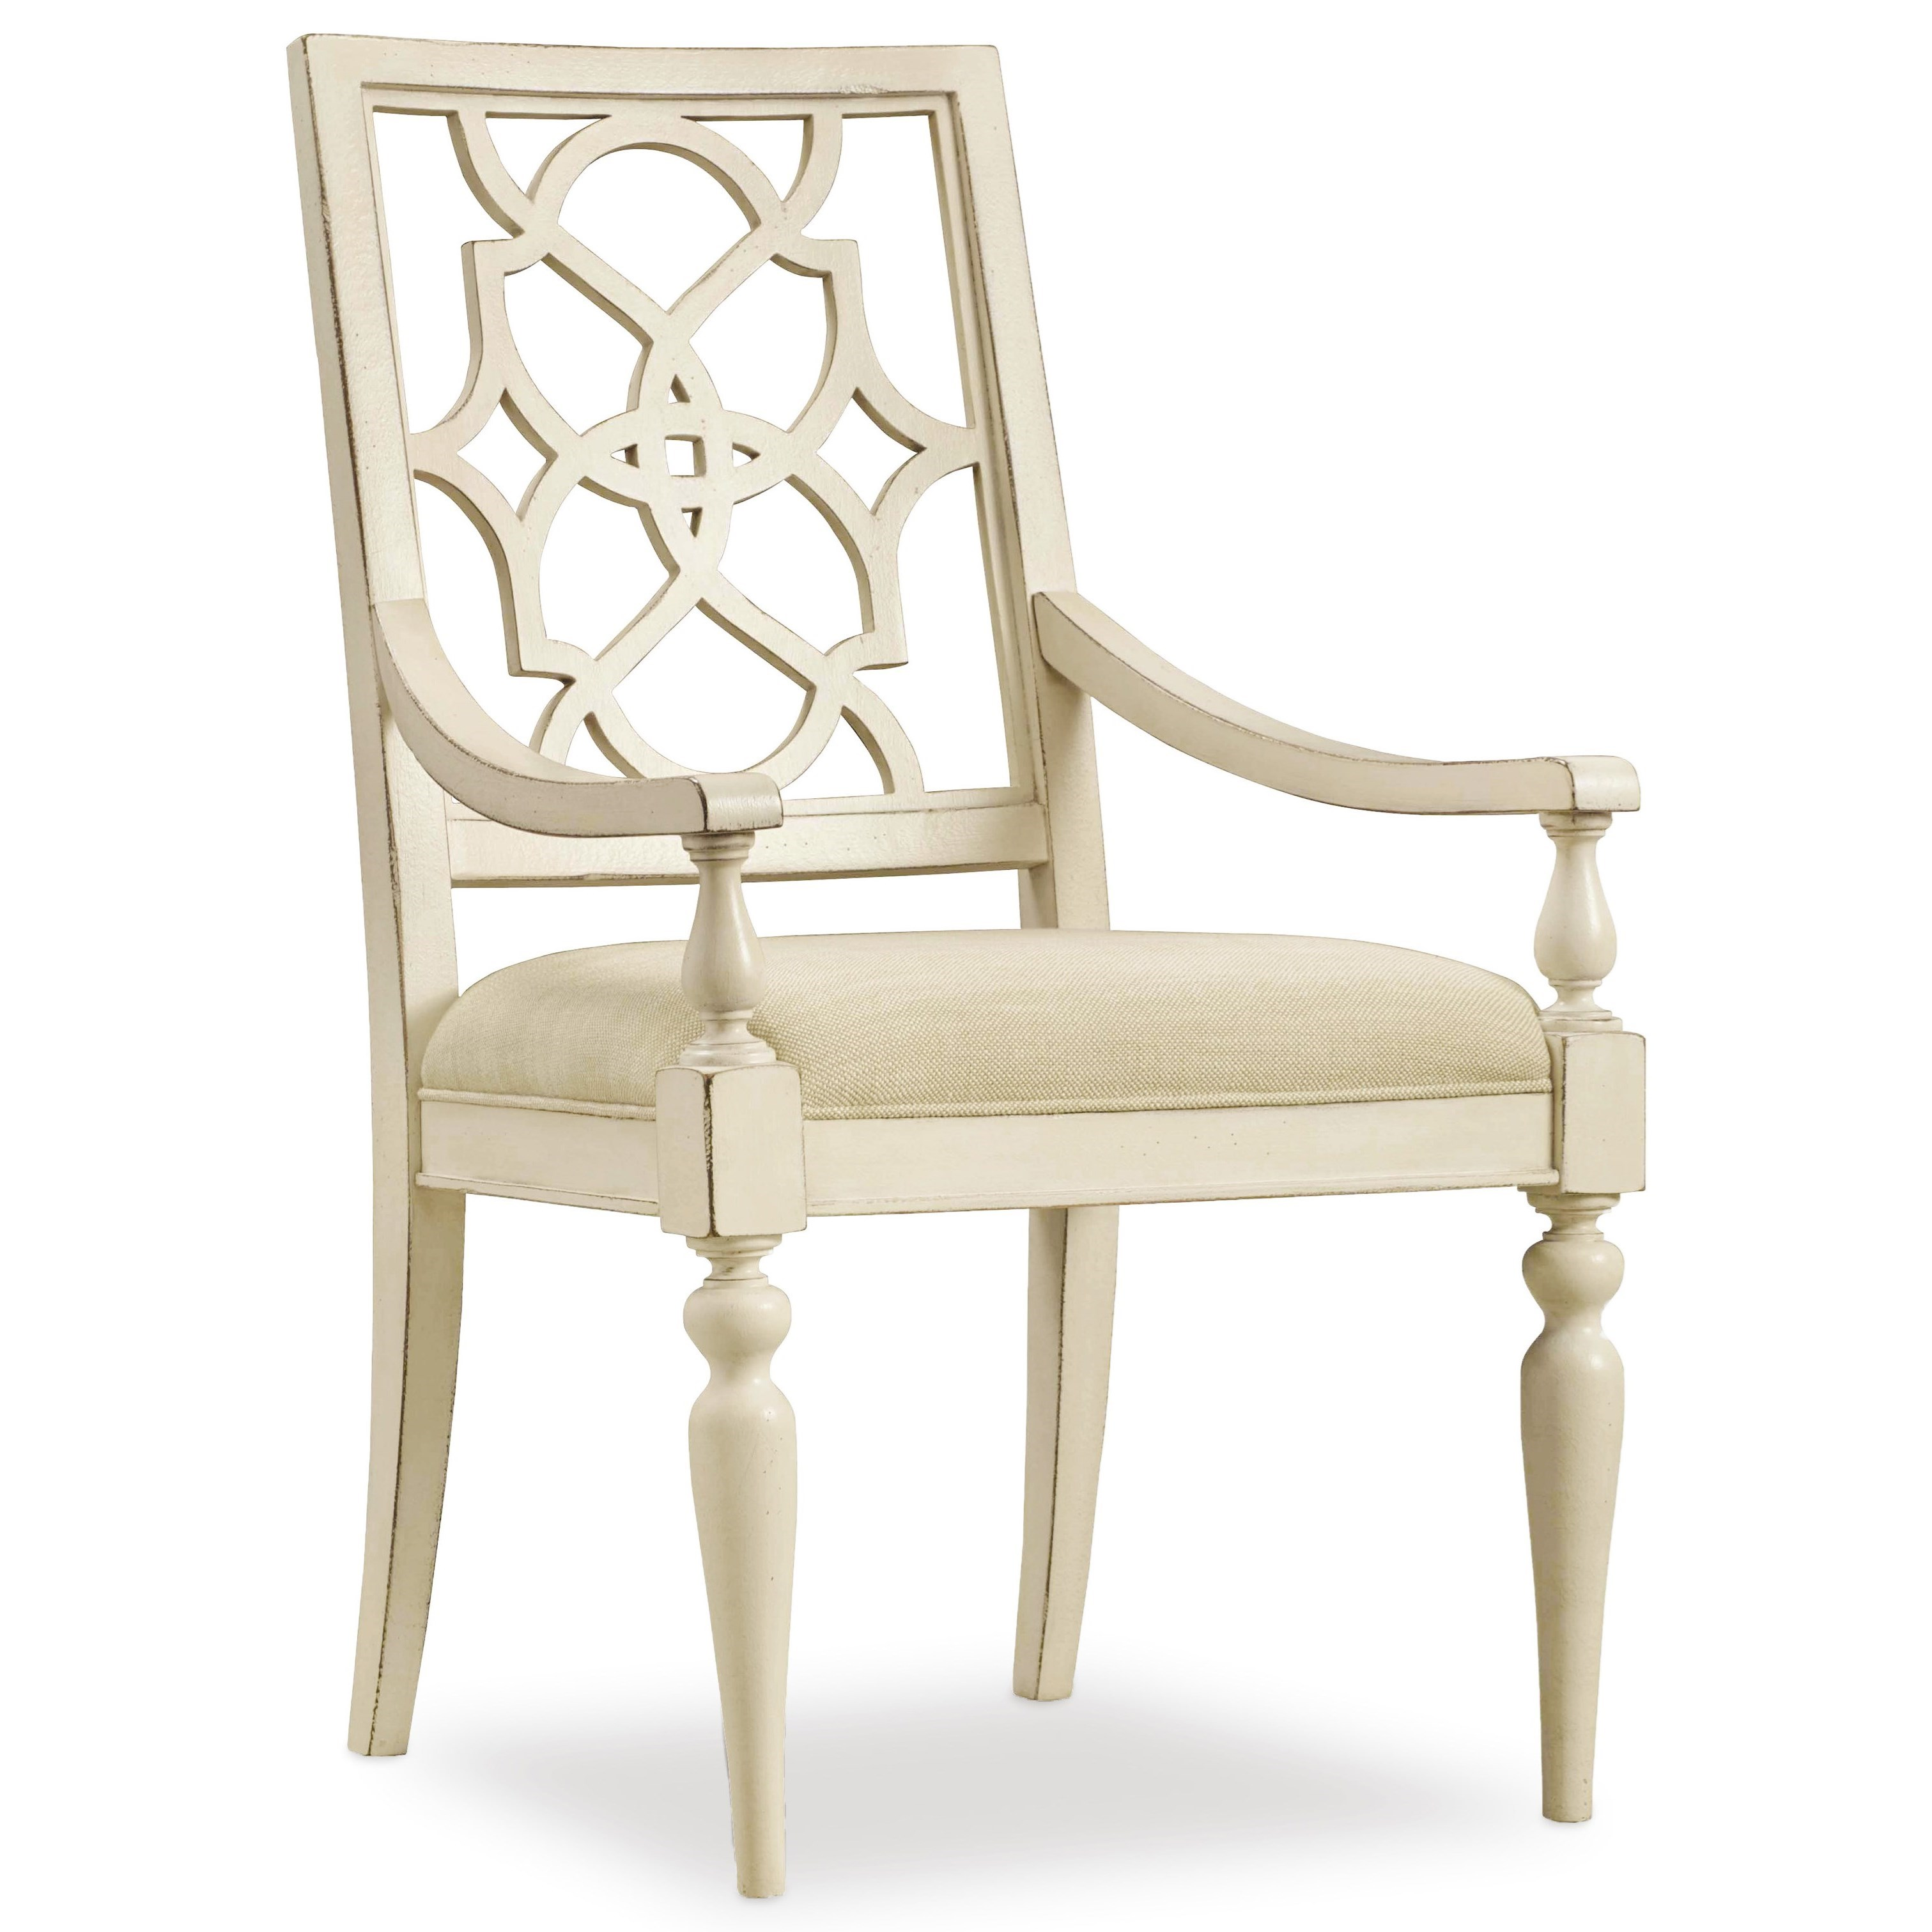 Hooker furniture sandcastle fretback arm chair for Dining chairs with upholstered seats